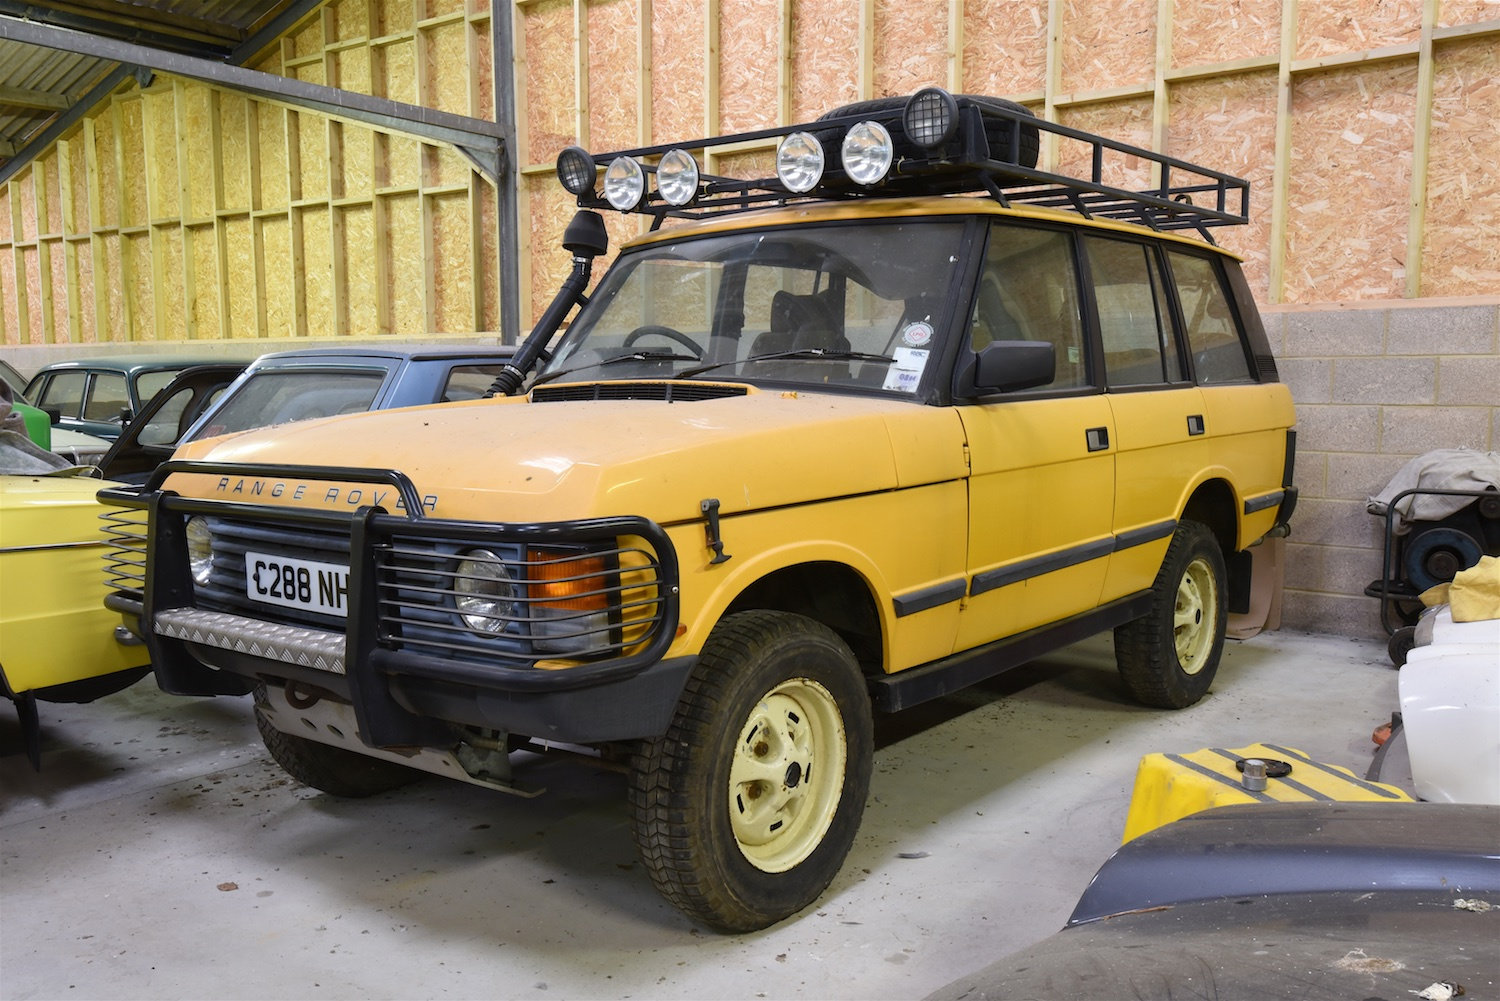 1985 Range Rover Classic – Camel Trophy replica For Sale (picture 2 of 6)